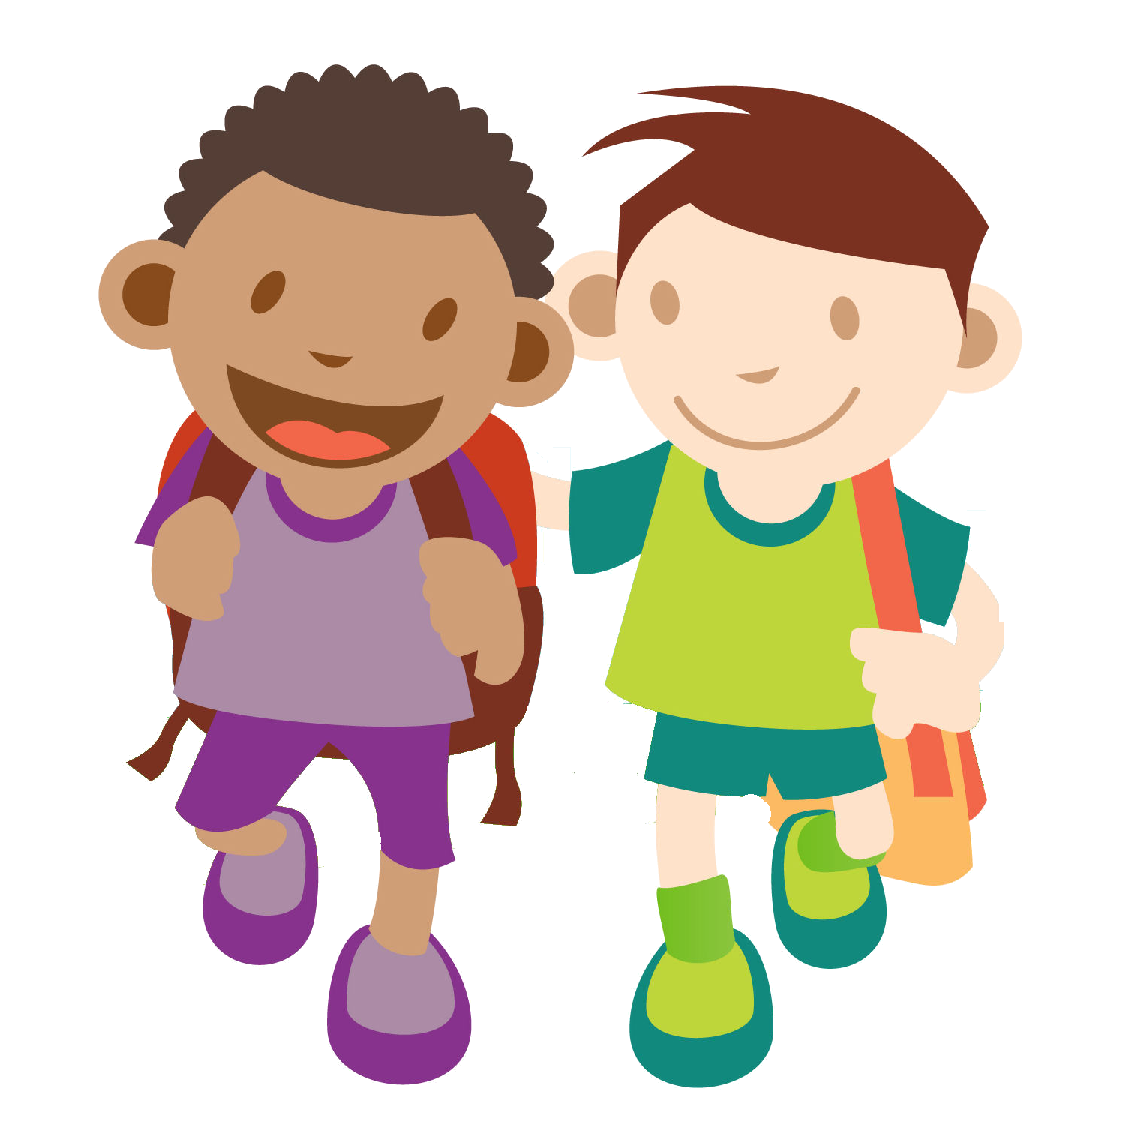 Free Two Cartoon Boys, Download Free Clip Art, Free Clip Art.